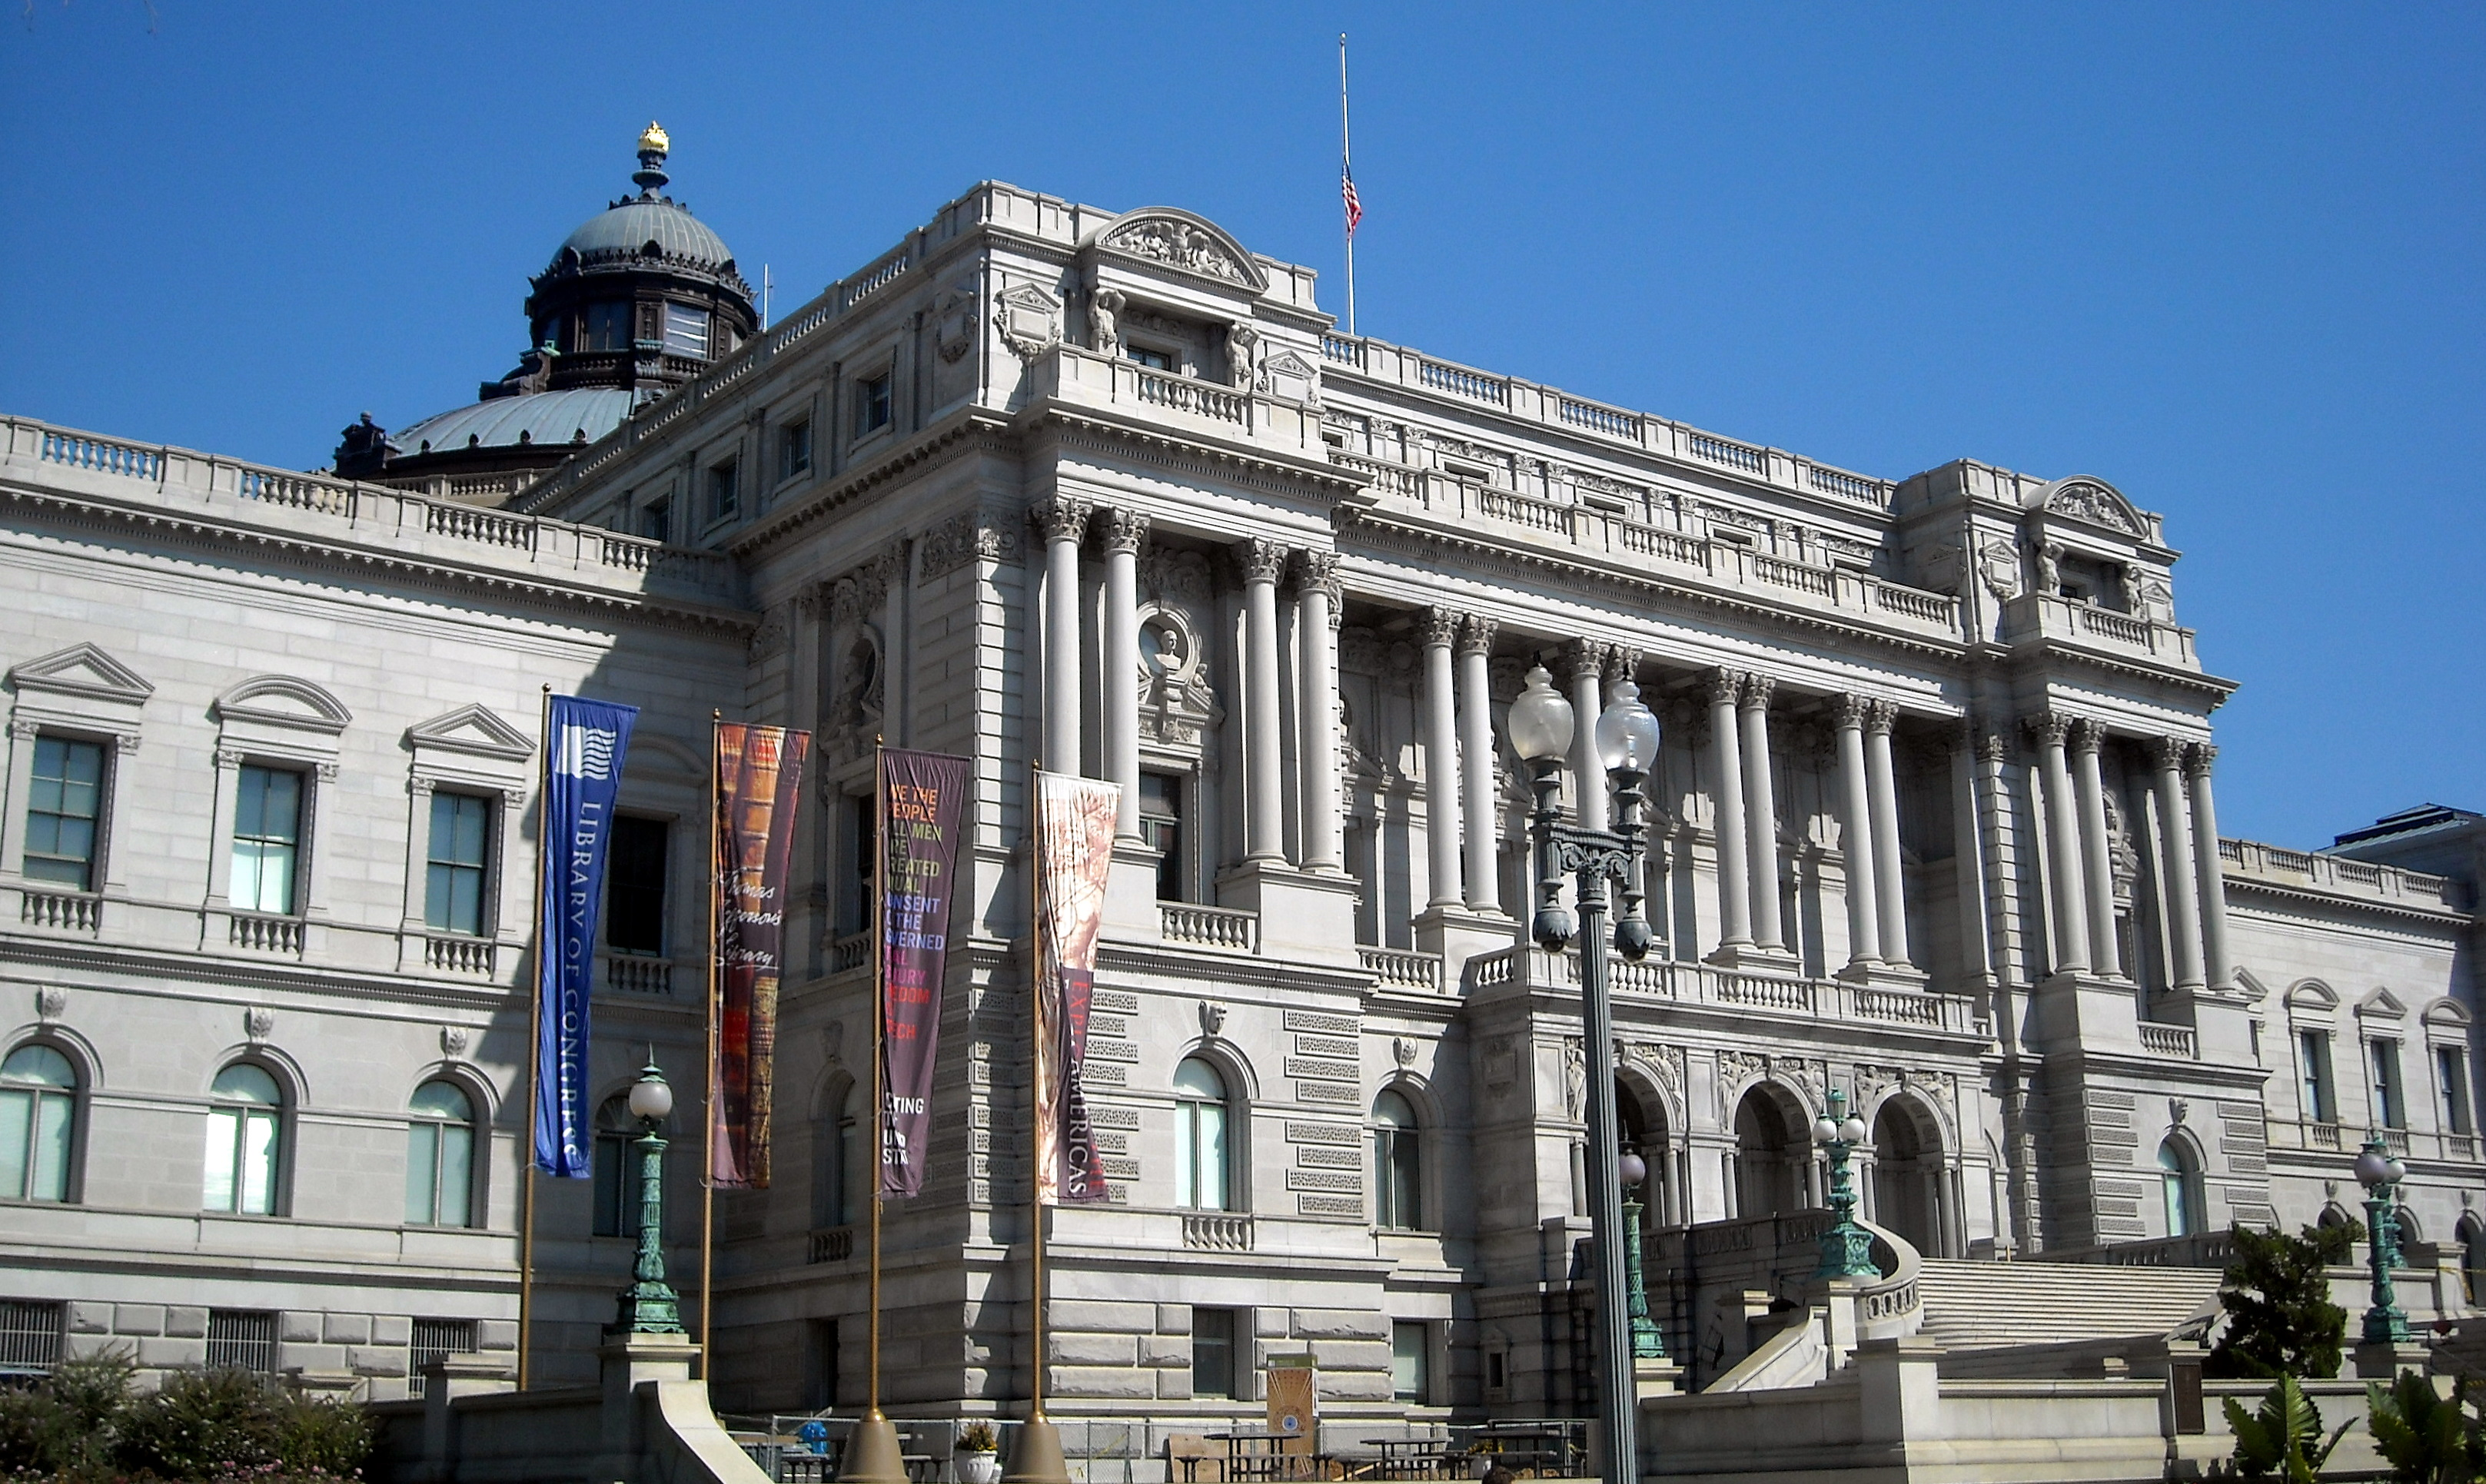 Library of Congress (1).jpg